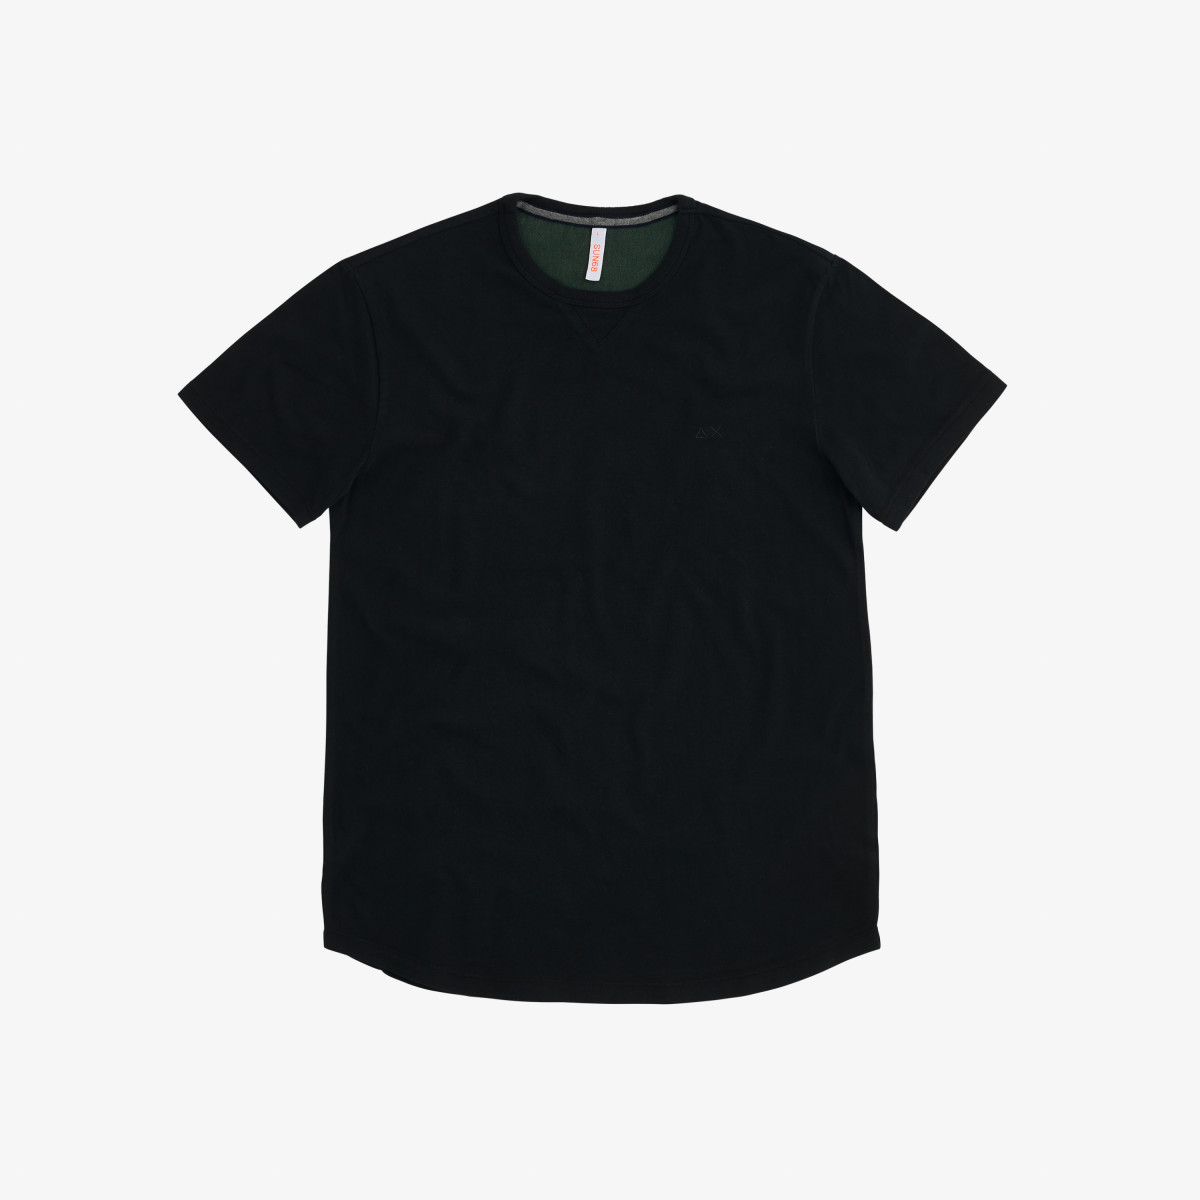 T-SHIRT NIKI S/S BLACK